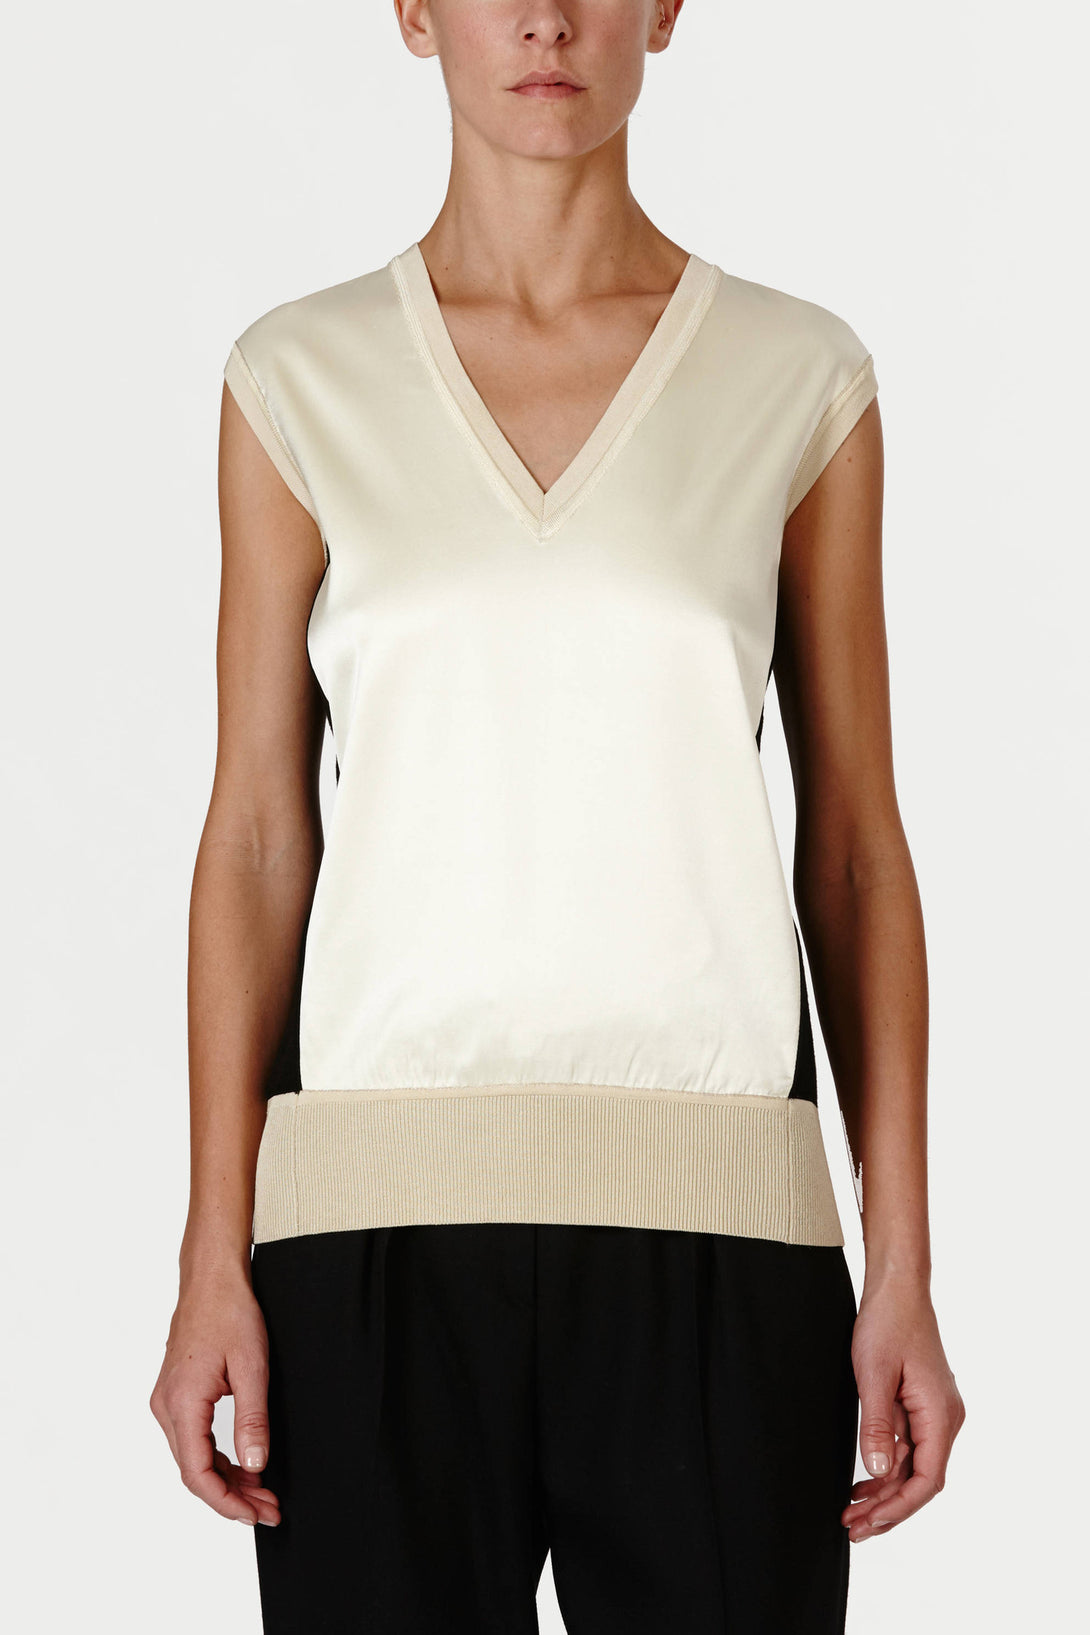 Sleeveless V-Neck - Black/Bisque